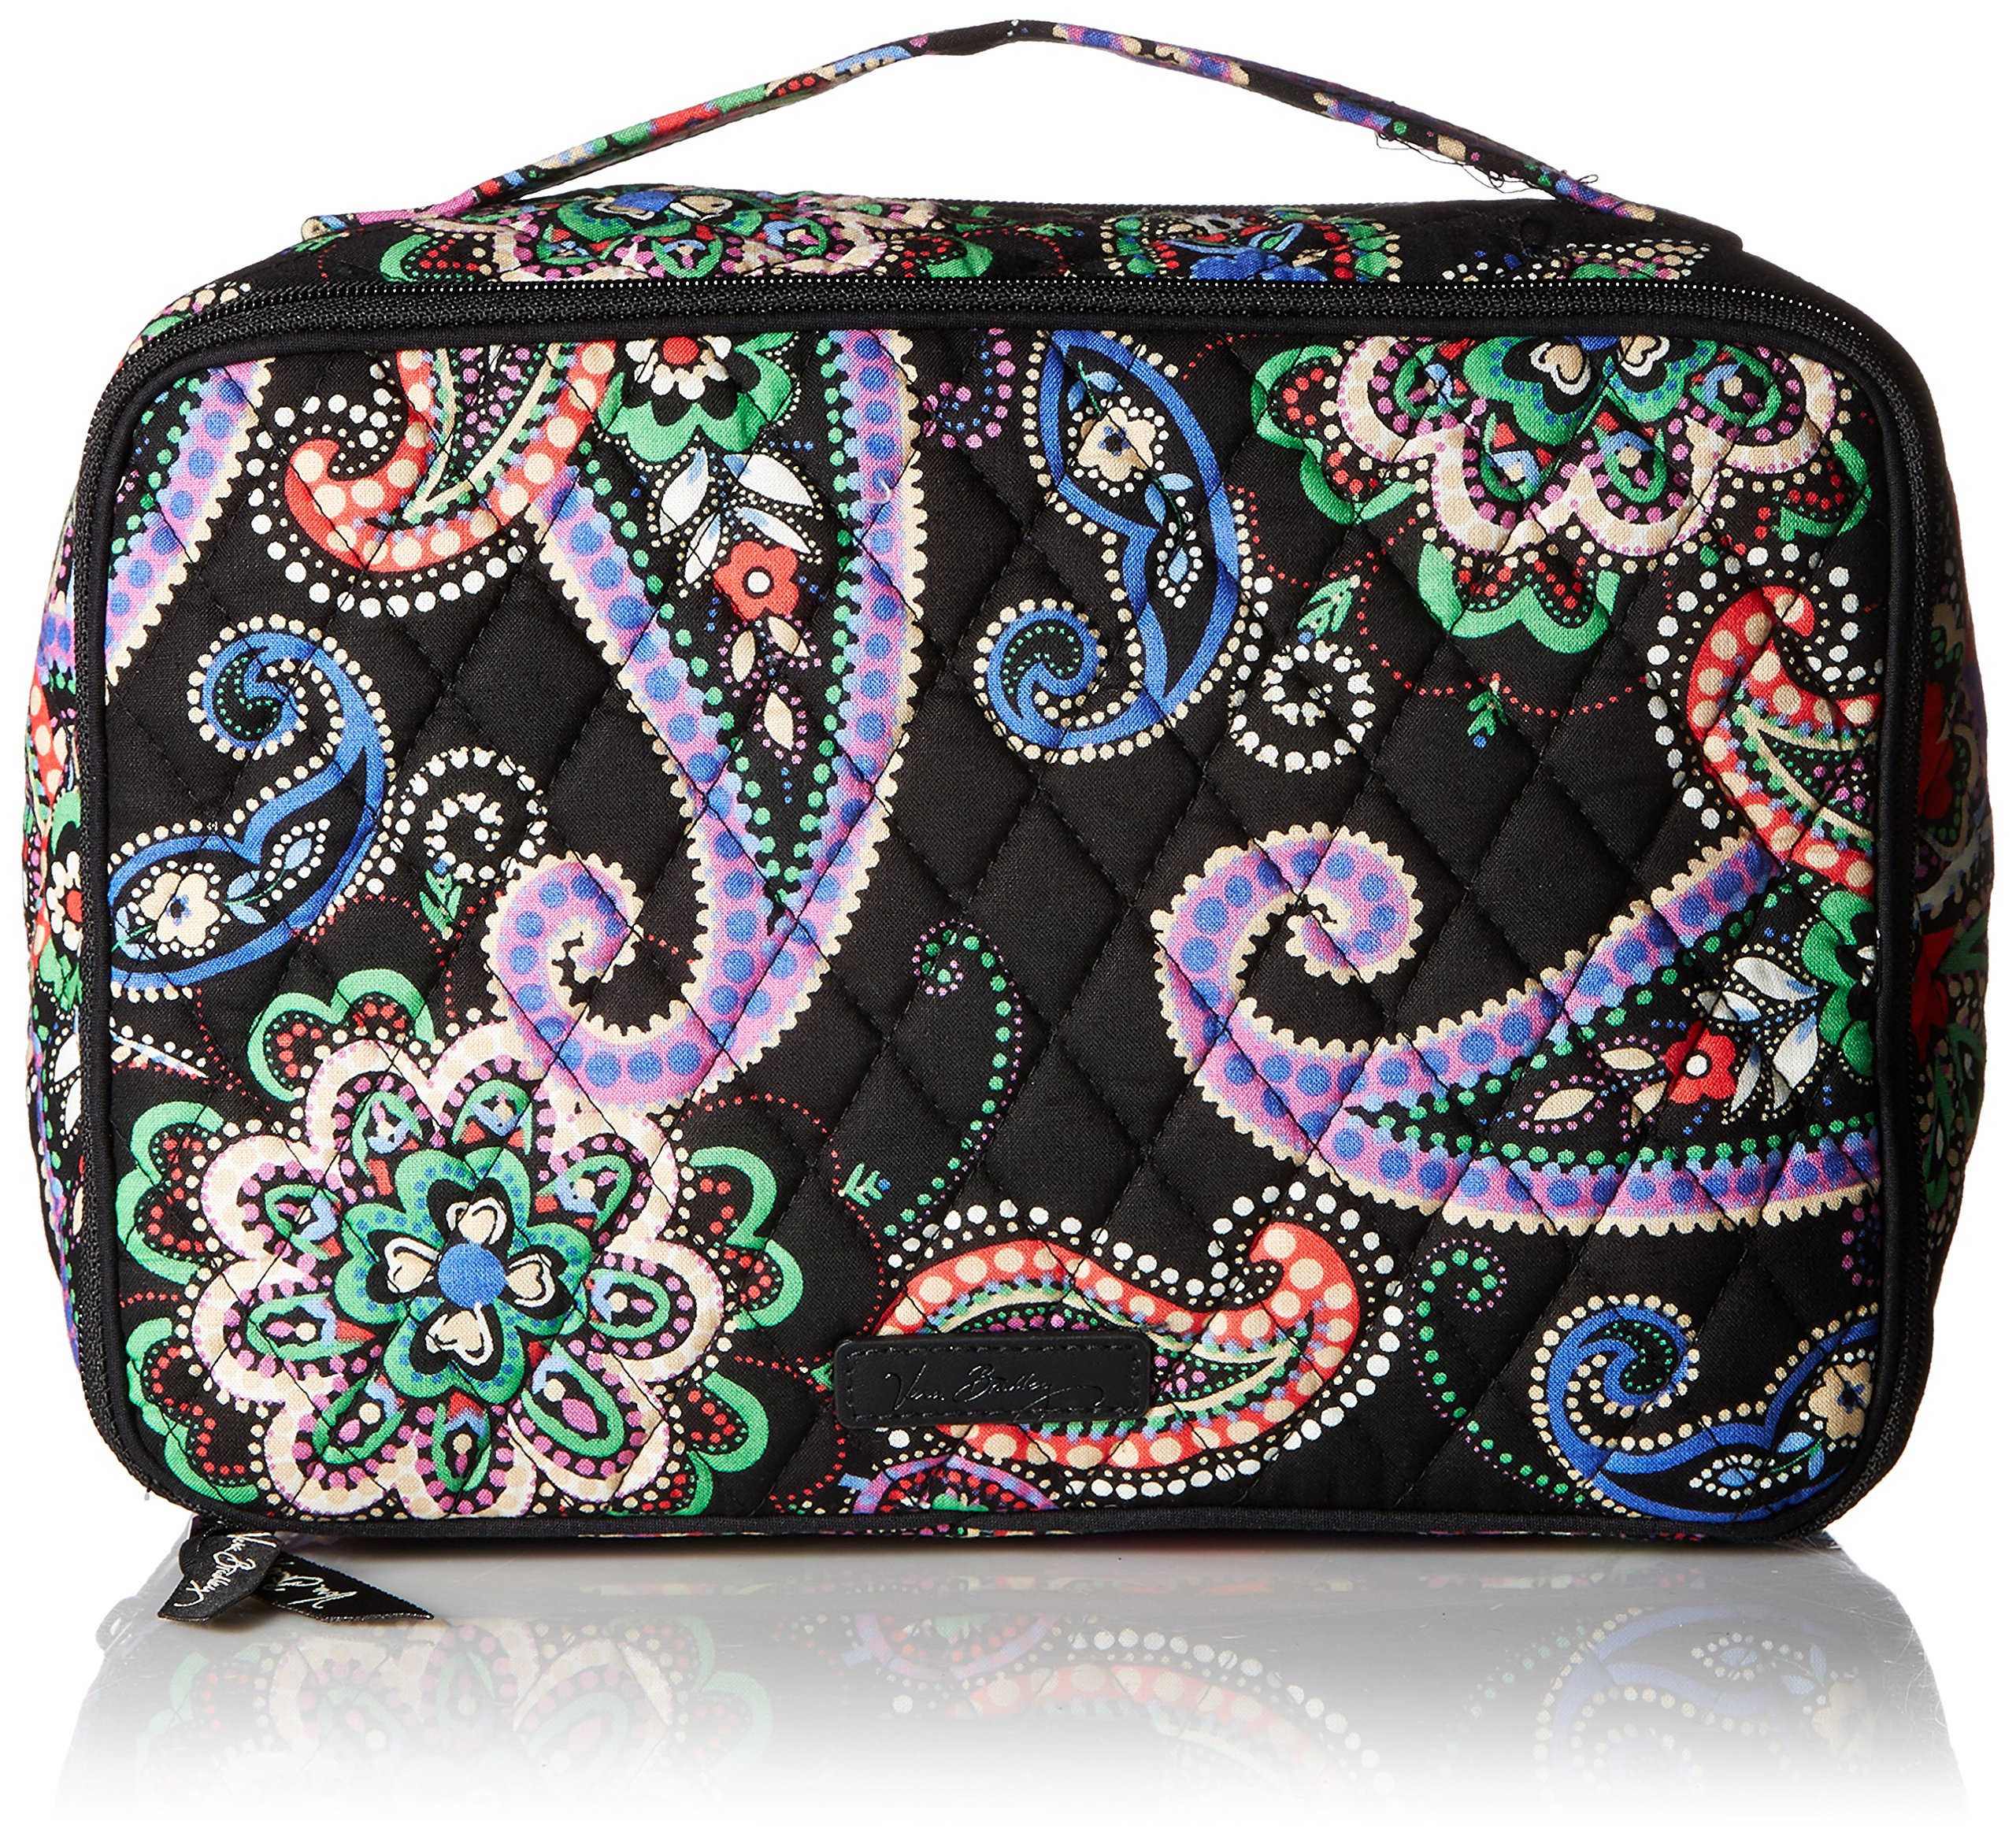 Vera Bradley Large Blush & Brush Makeup Case, Kiev Paisley